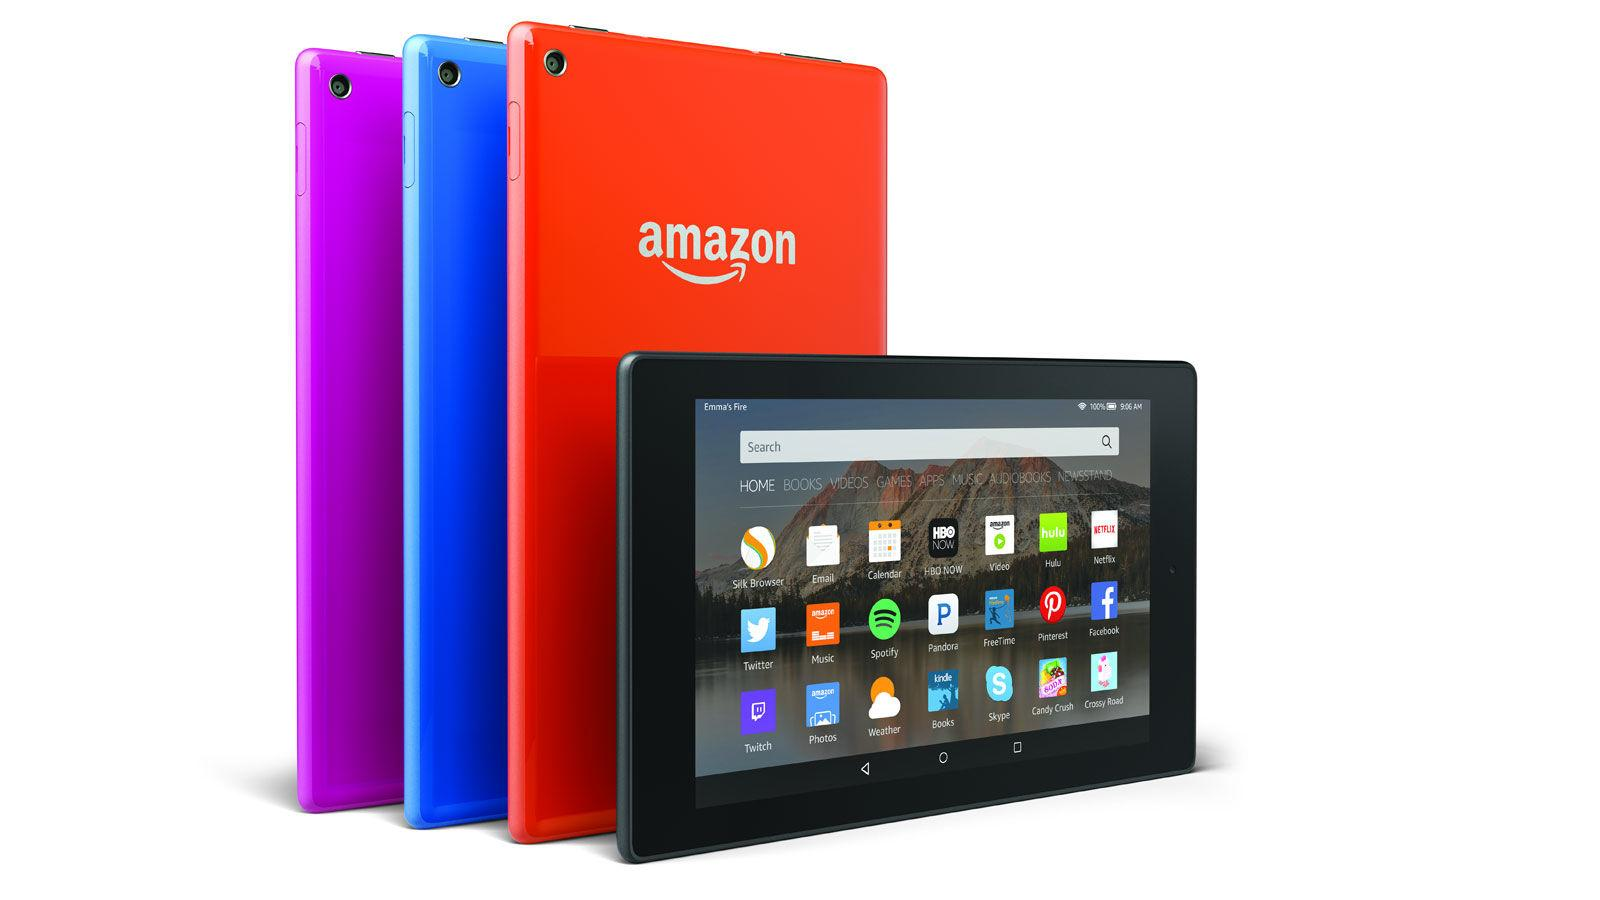 Amazon Fire HD 8 2017